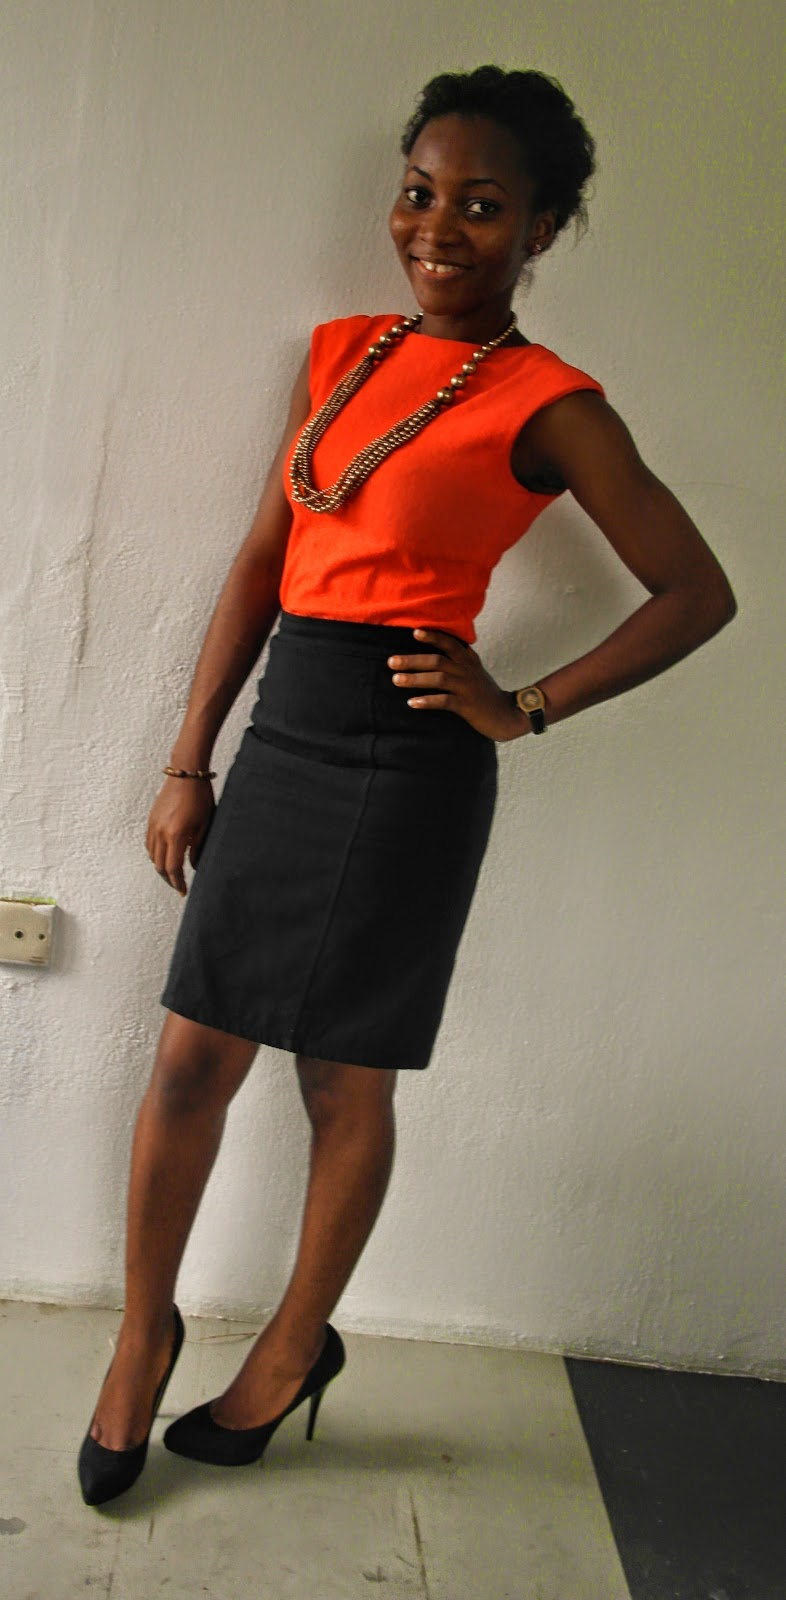 Zara collection, pumps, high heeled shoes for women, learning how to wear heels, calabar girl, Fashionista